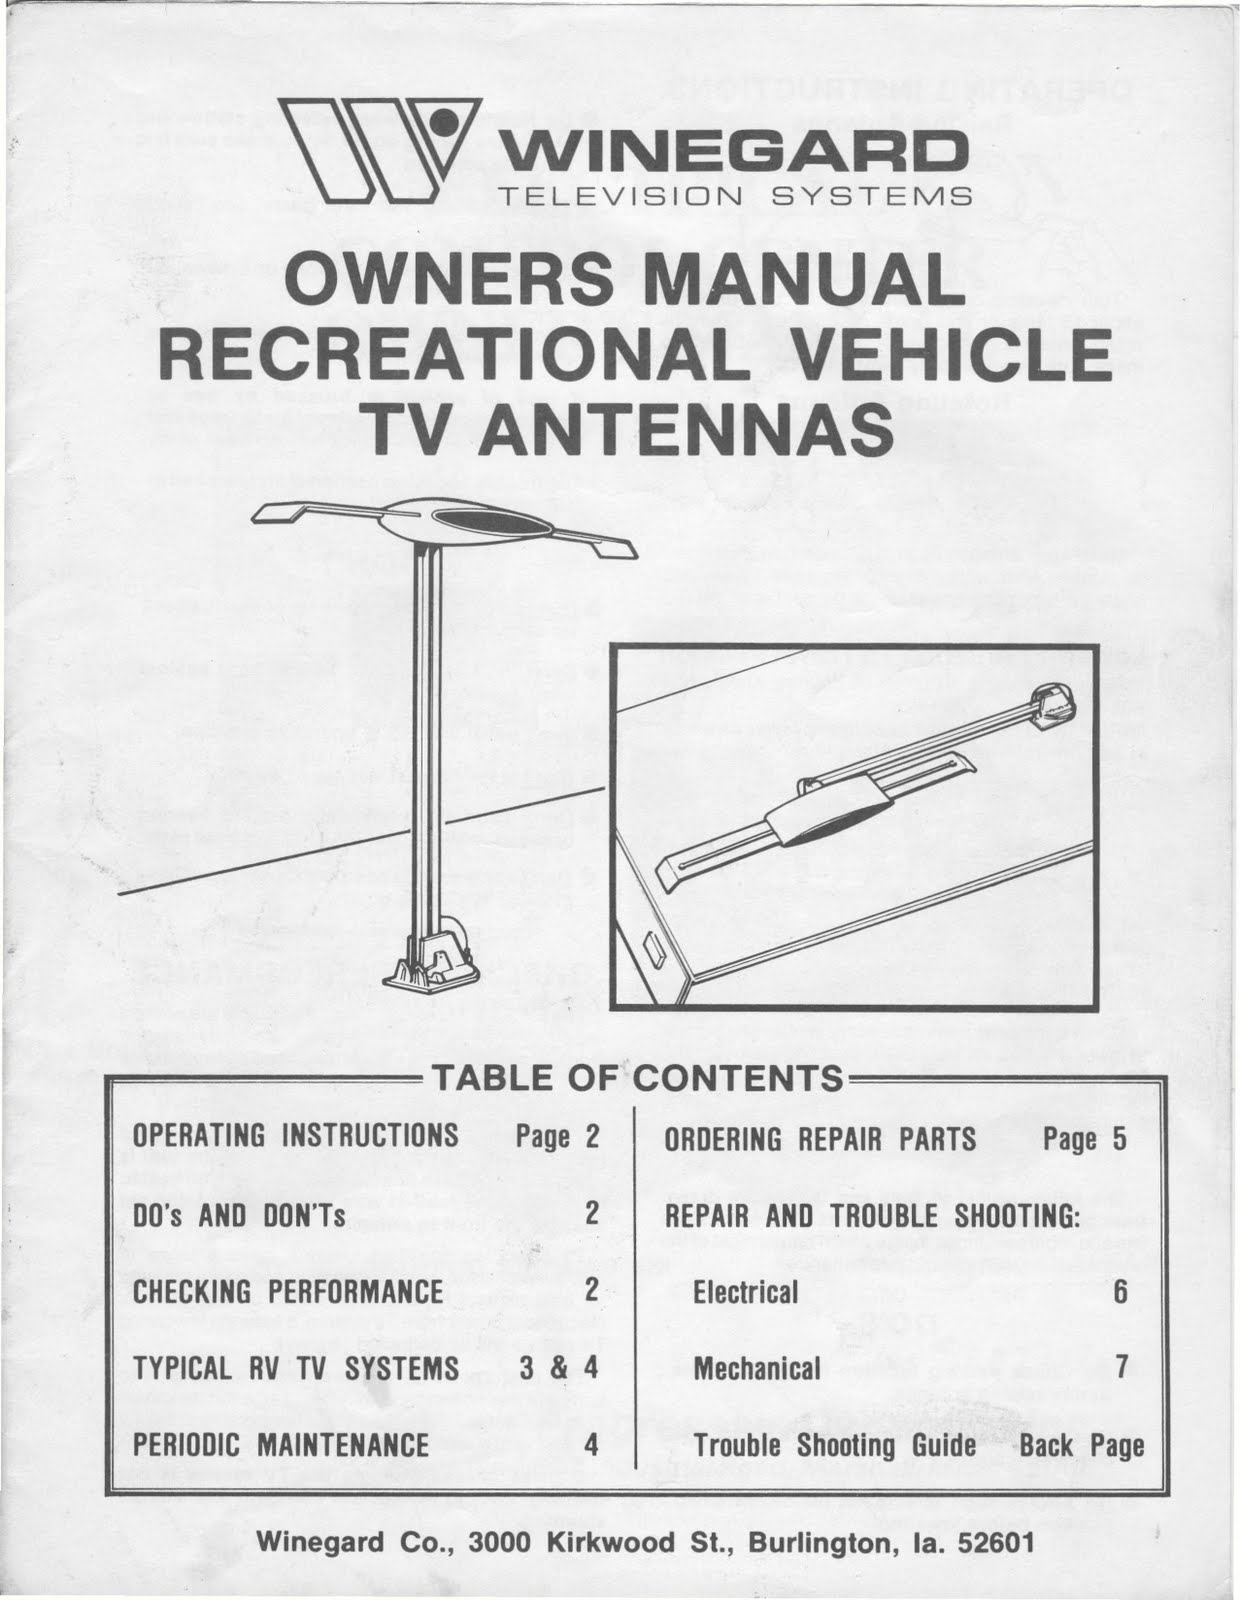 winegard+rv+tv+antenna0001%5B1%5D 001 rv antenna diagram omni directional rv antenna \u2022 wiring diagrams Winegard RV TV Antenna Booster at reclaimingppi.co